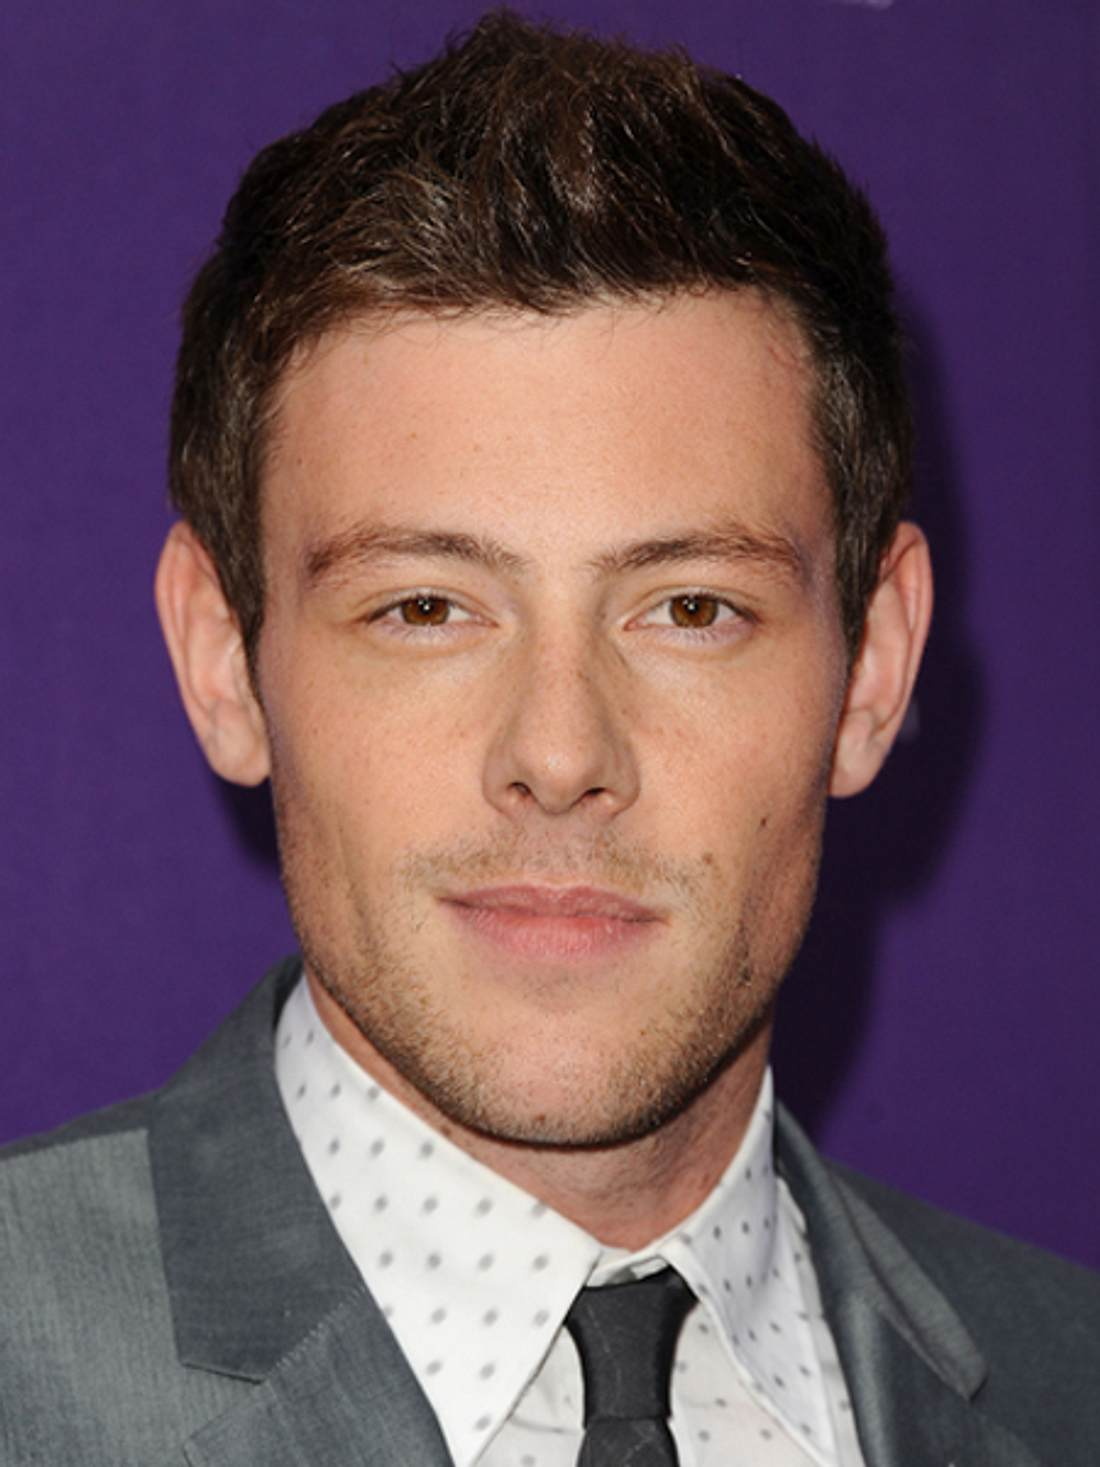 Cory Monteith starb am 13. Juli 2013